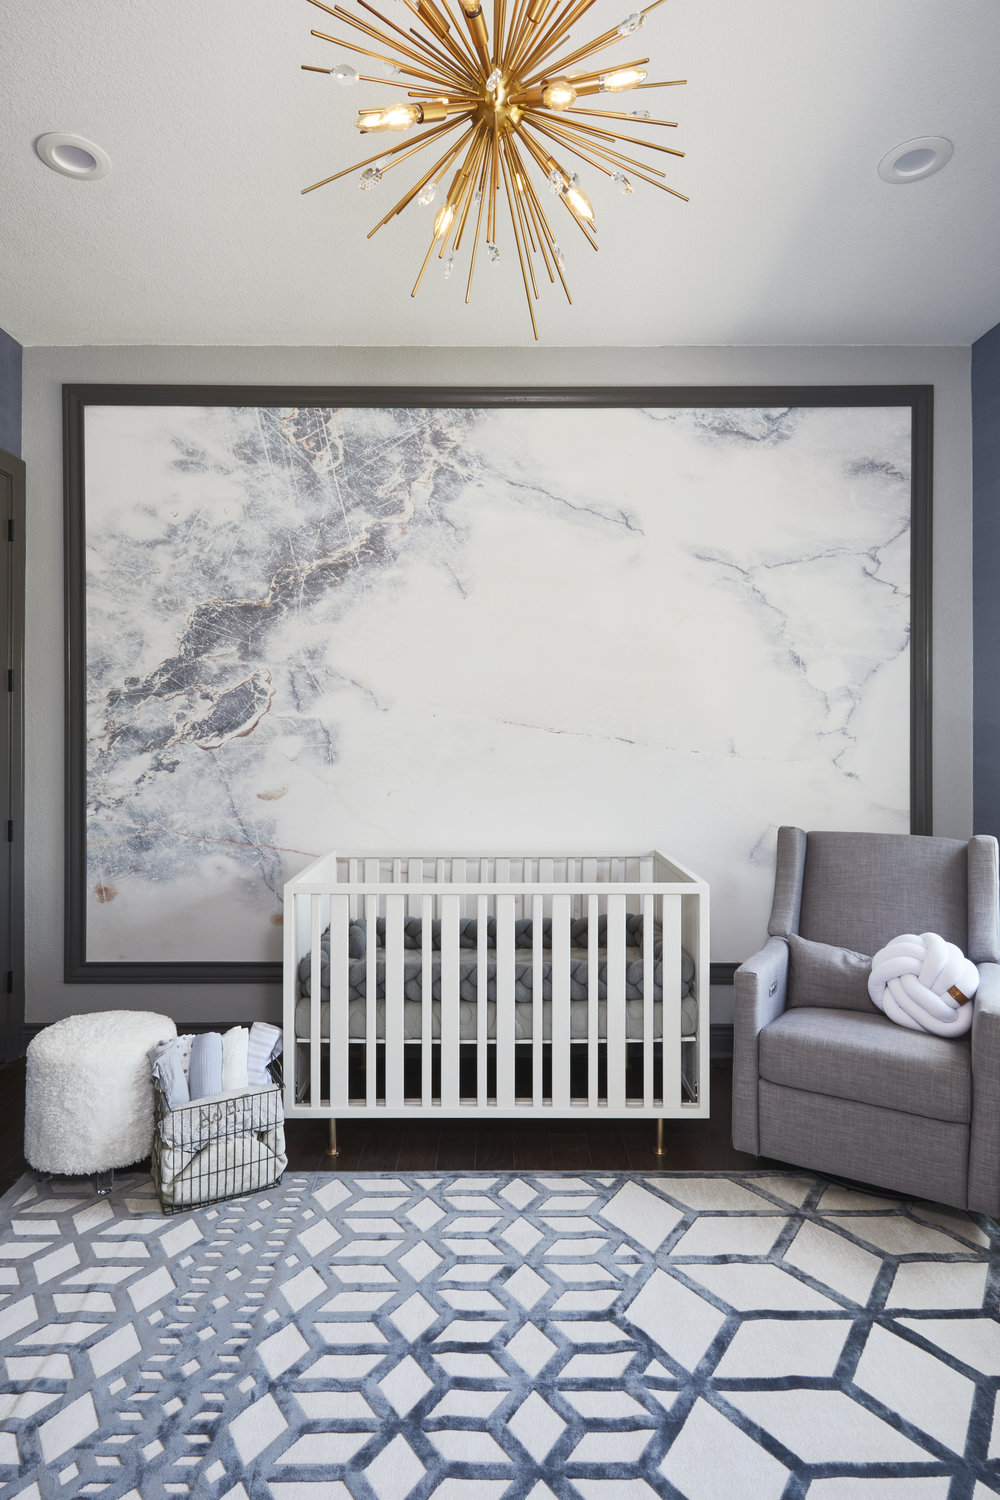 Sanya_Richards_Ross_Nursery_6